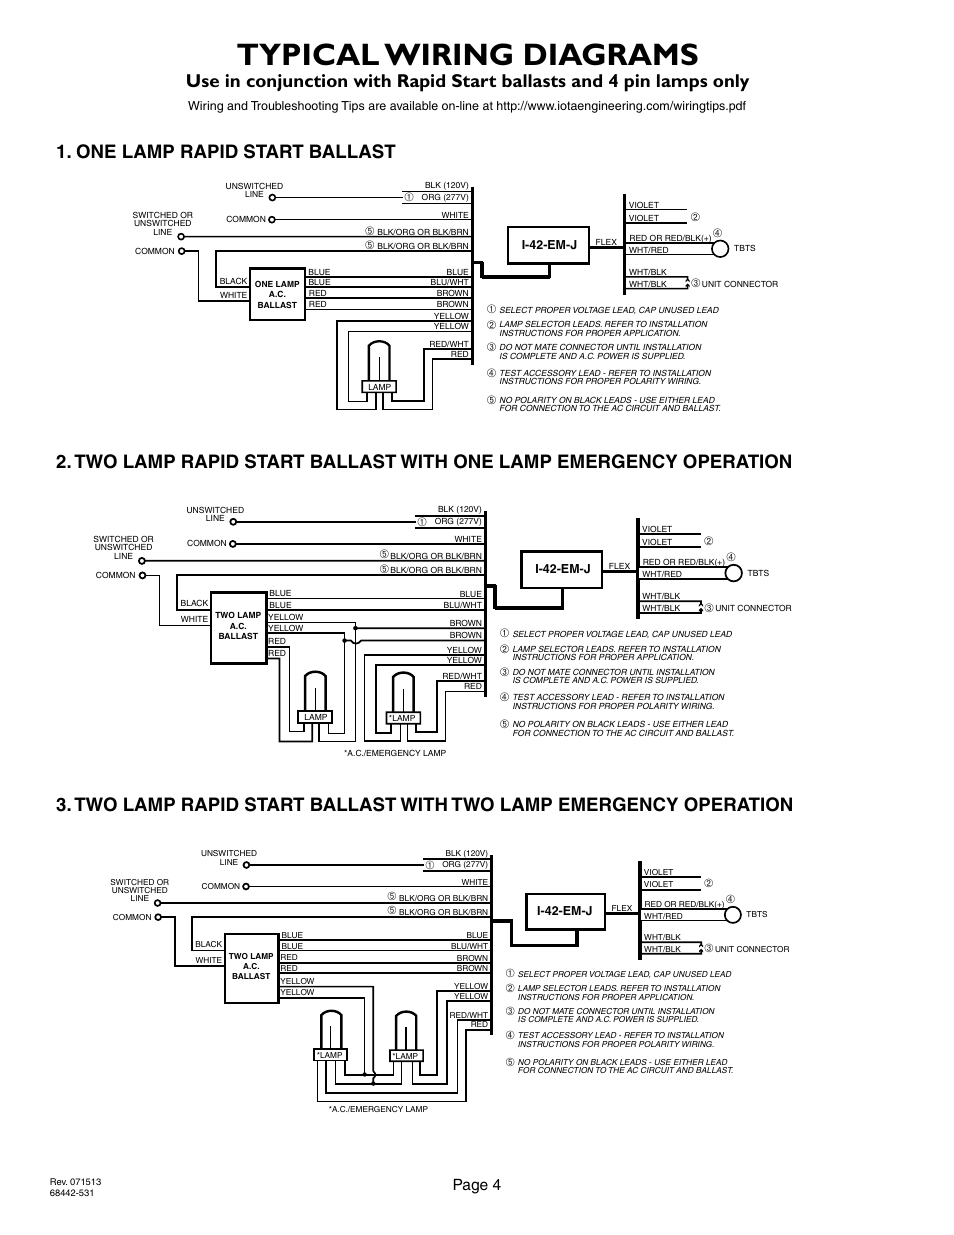 medium resolution of typical wiring diagrams page 4 2lrsb42j ac two lamp rapid start rapid start wiring diagram